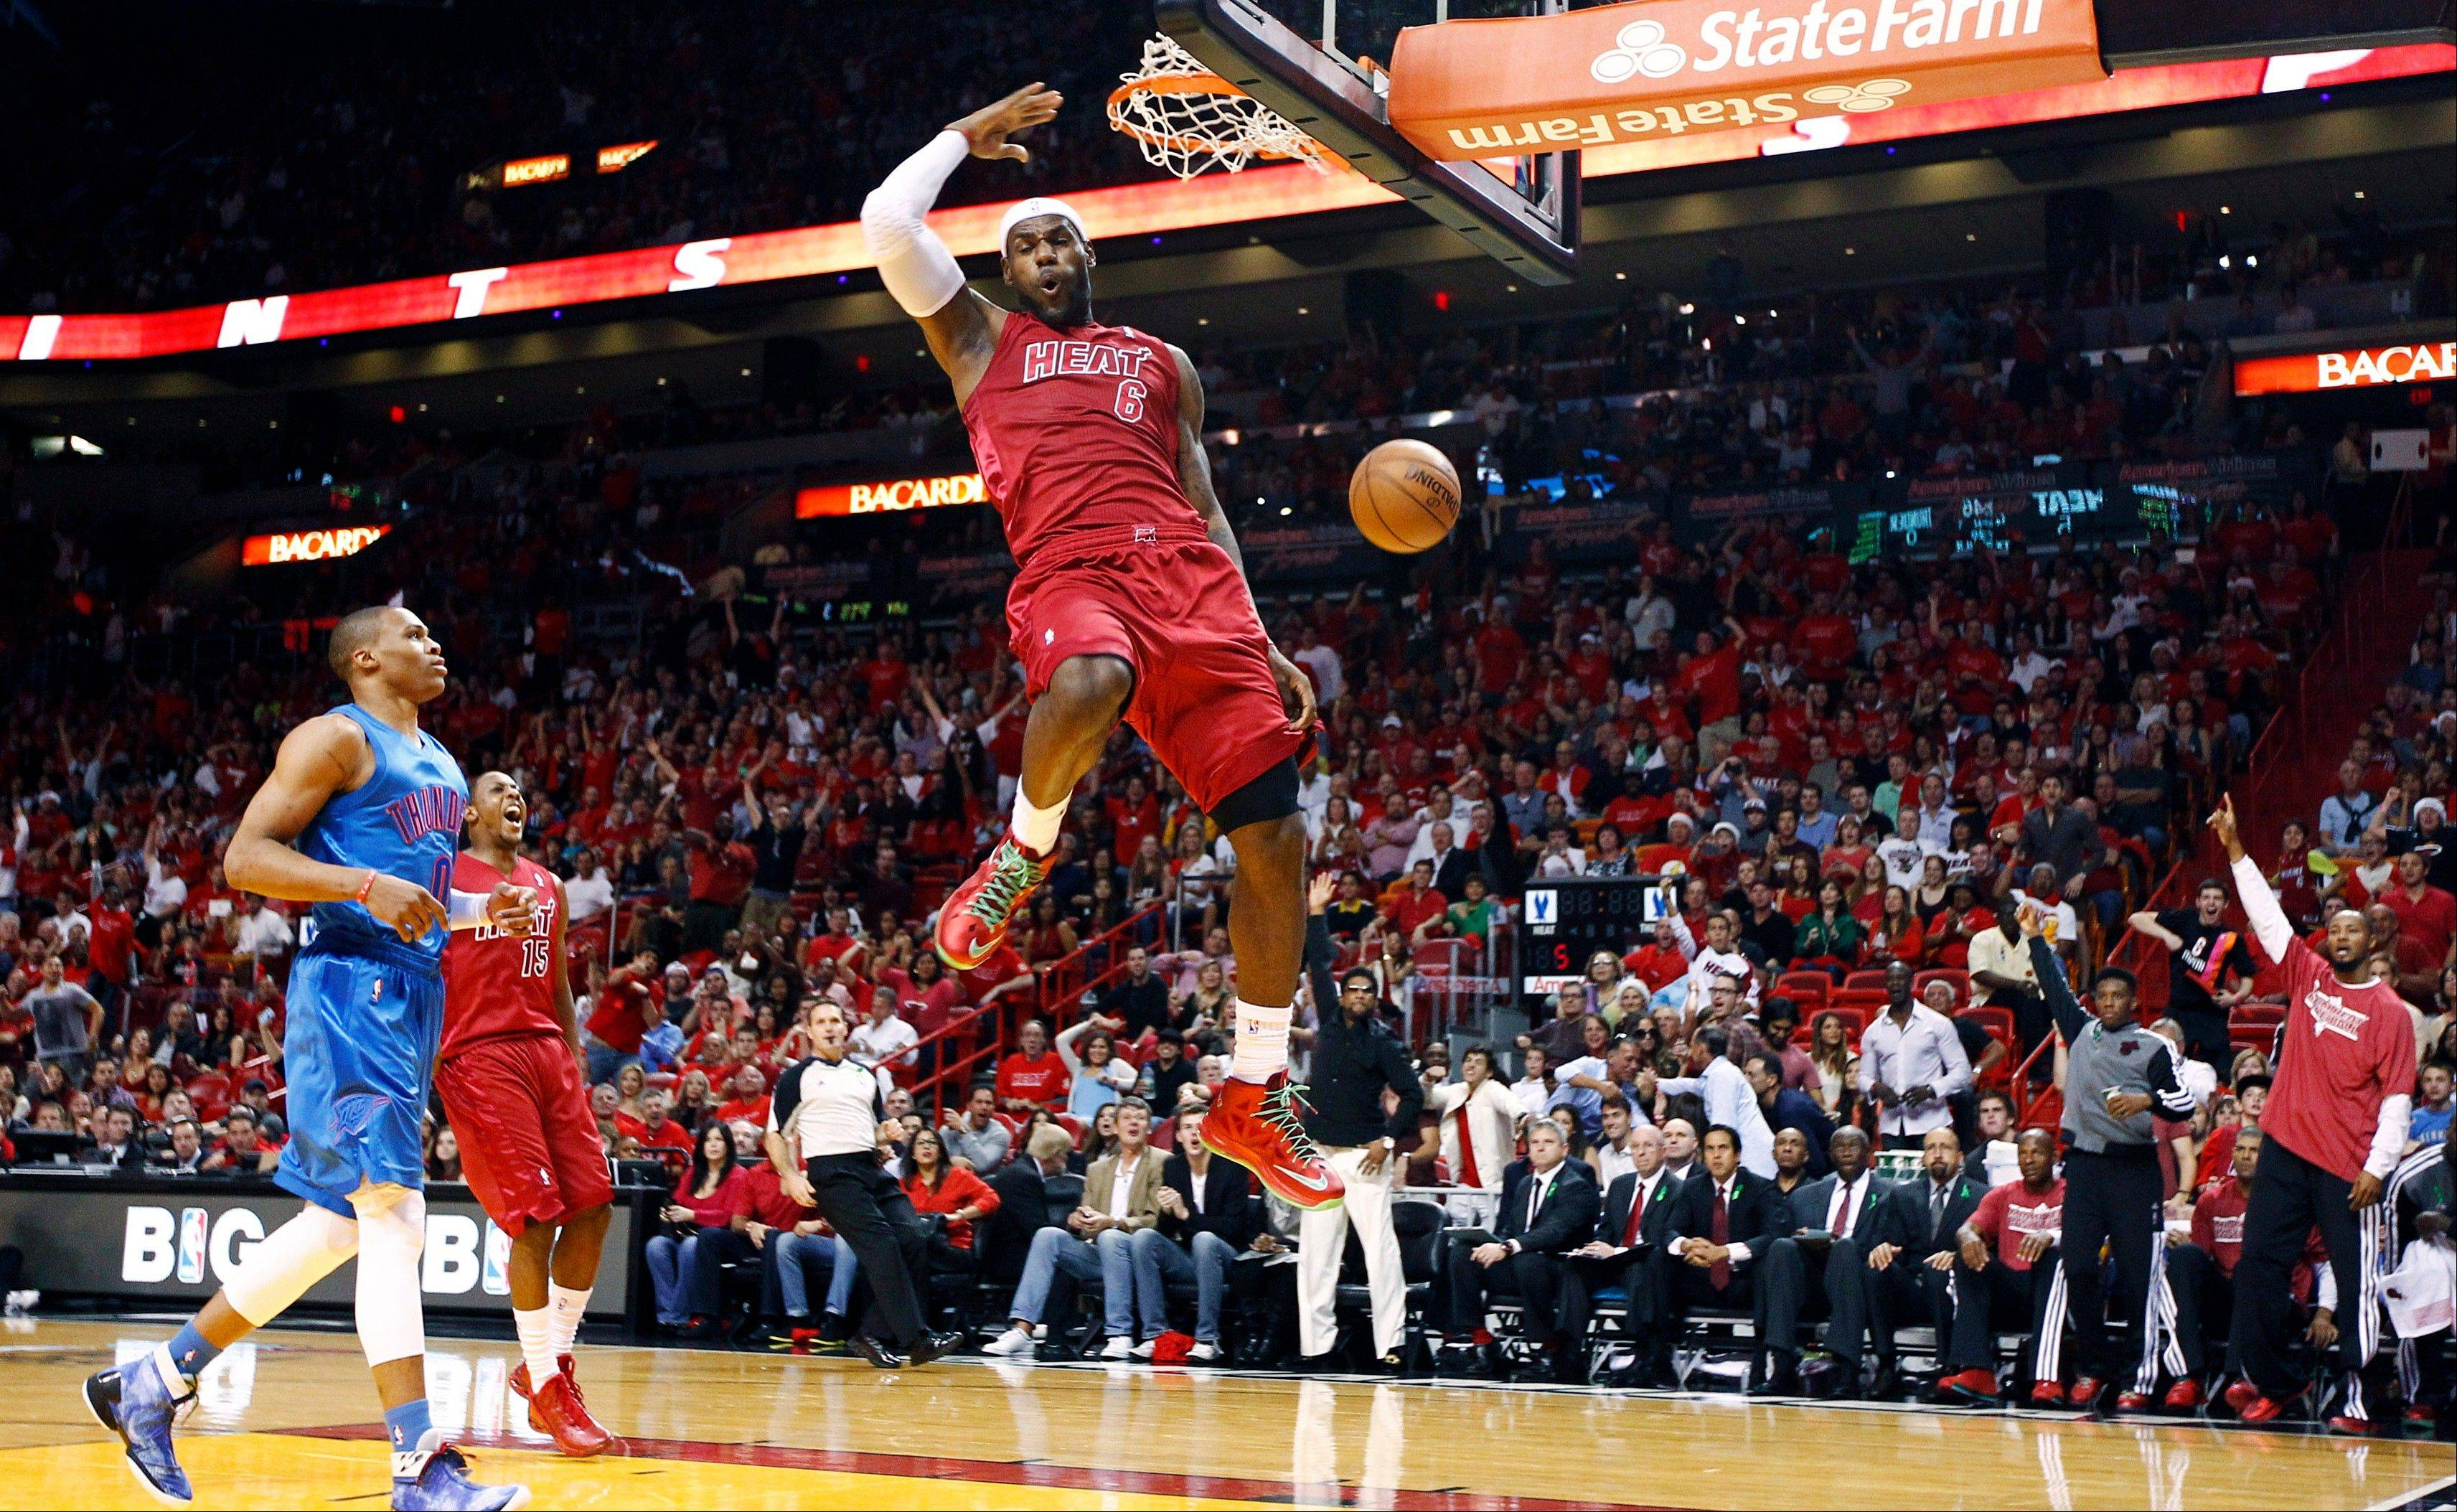 Miami Heat forward LeBron James dunks as Oklahoma City Thunder's Russell Westbrook (0) and Heat's Mario Chalmers watch Tuesday during the first half in Miami.